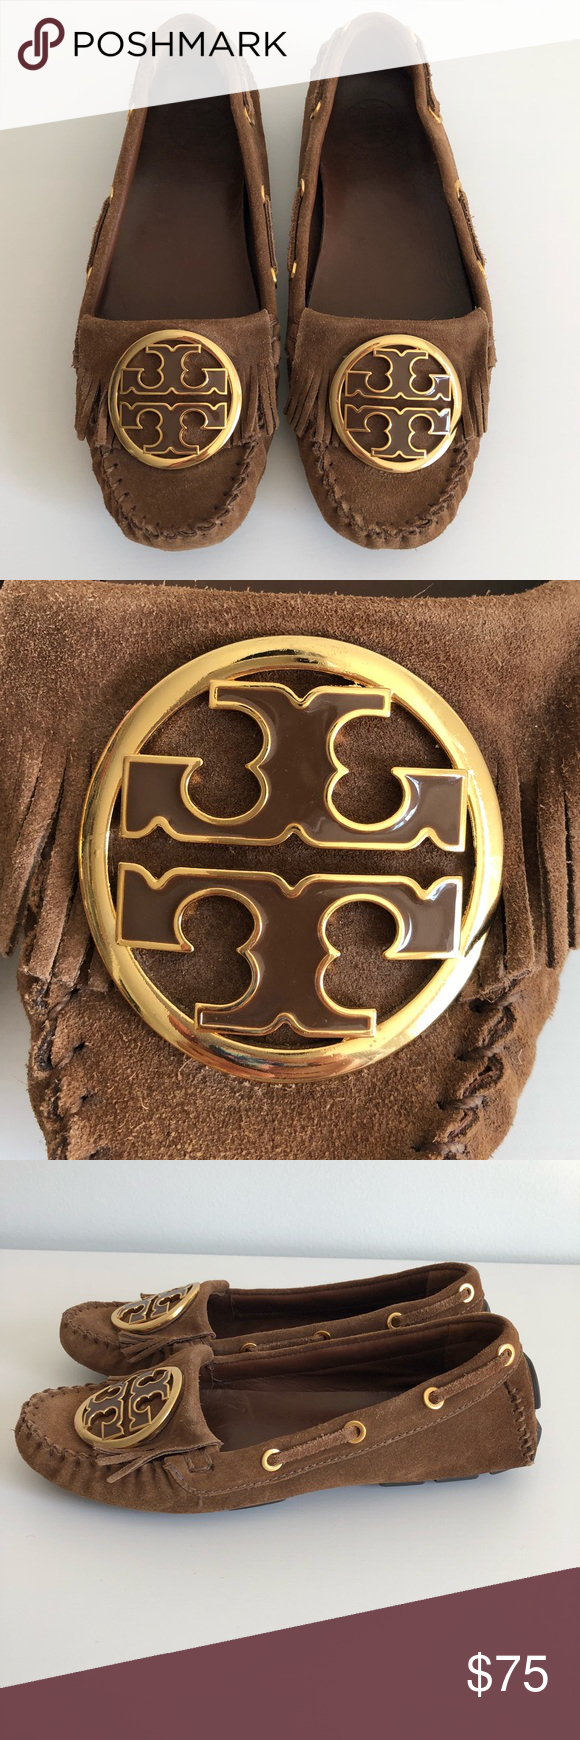 04eee599985 Tory Burch Alexandra Logo Moccasins Size Six Suede moccasin flats feature  enamel-inlaid logo medallion, fringe, and whipstitched seam at the vamp.